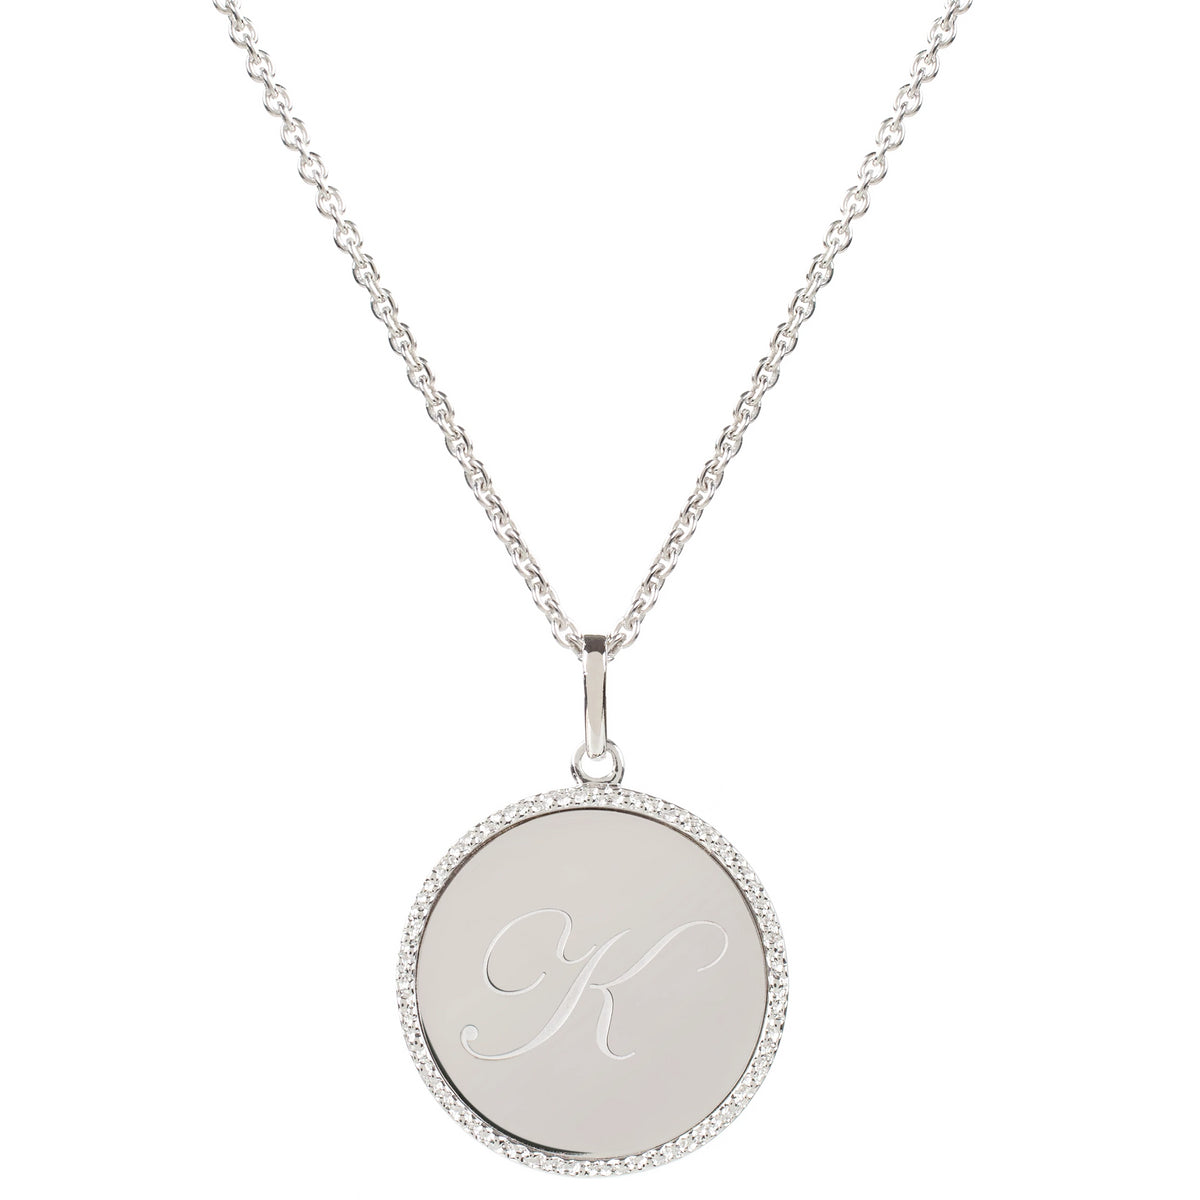 Echo Silver 'K' Initial Necklace